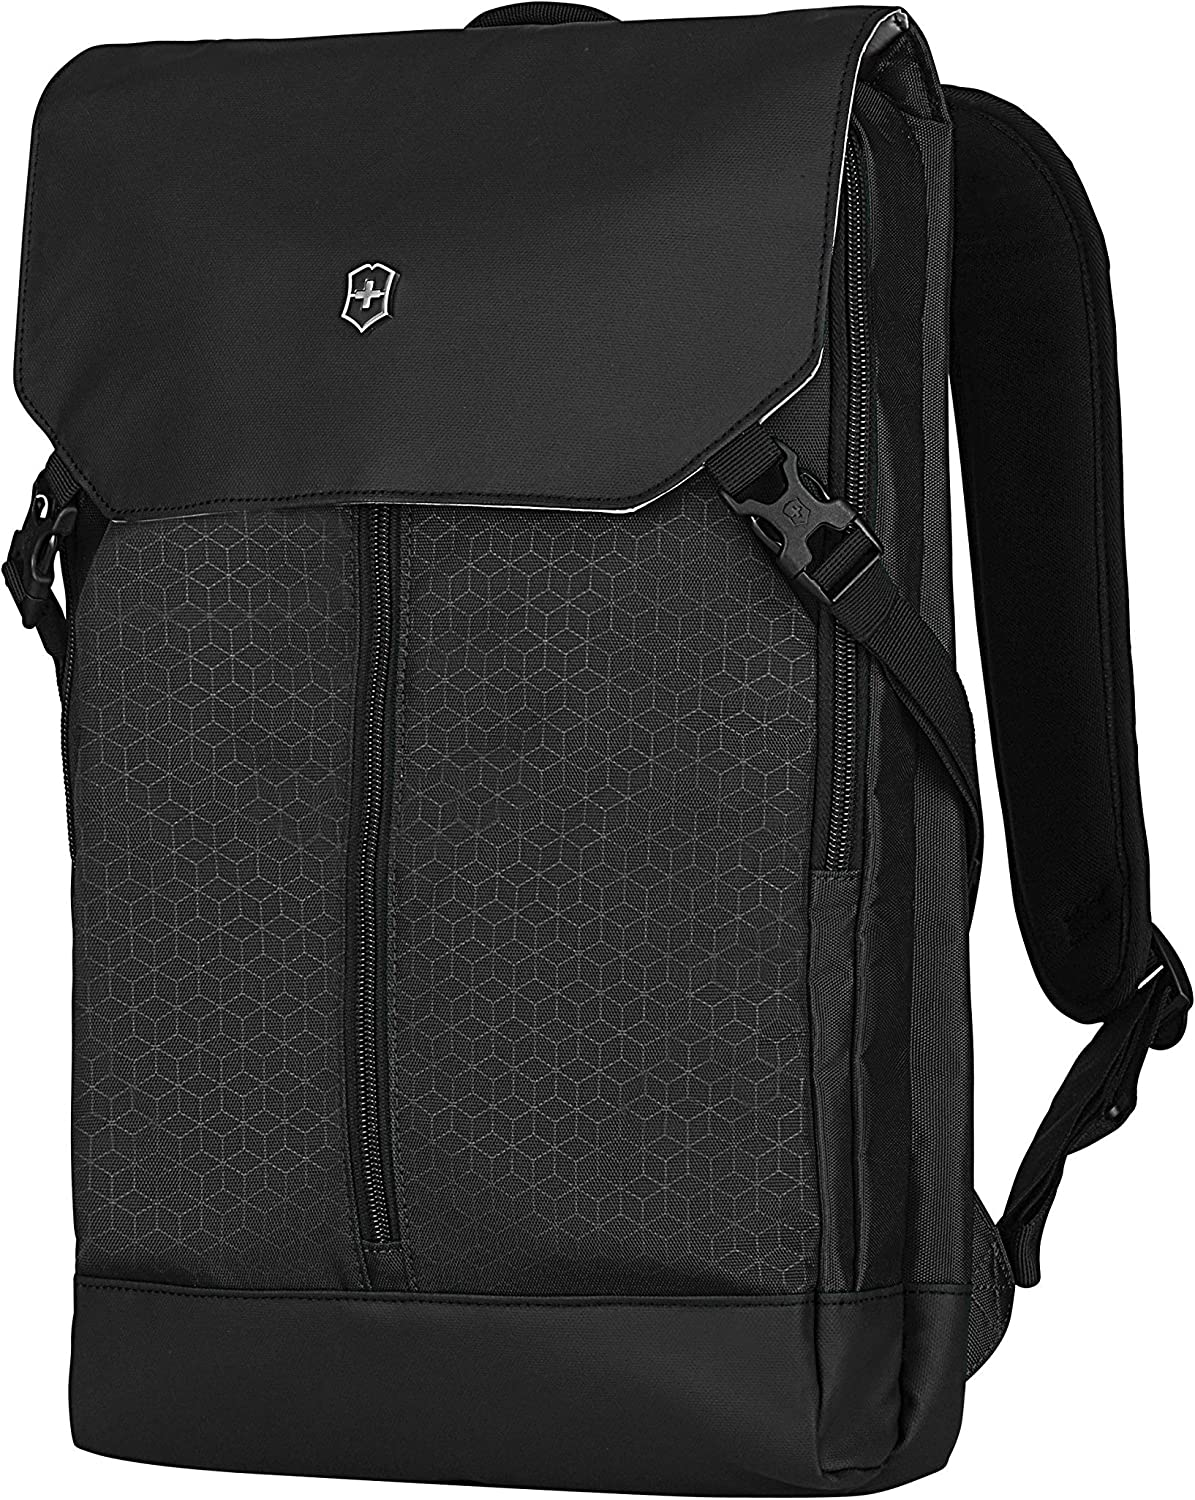 Victorinox Altmont Original Flapover Laptop Backpack (Black)